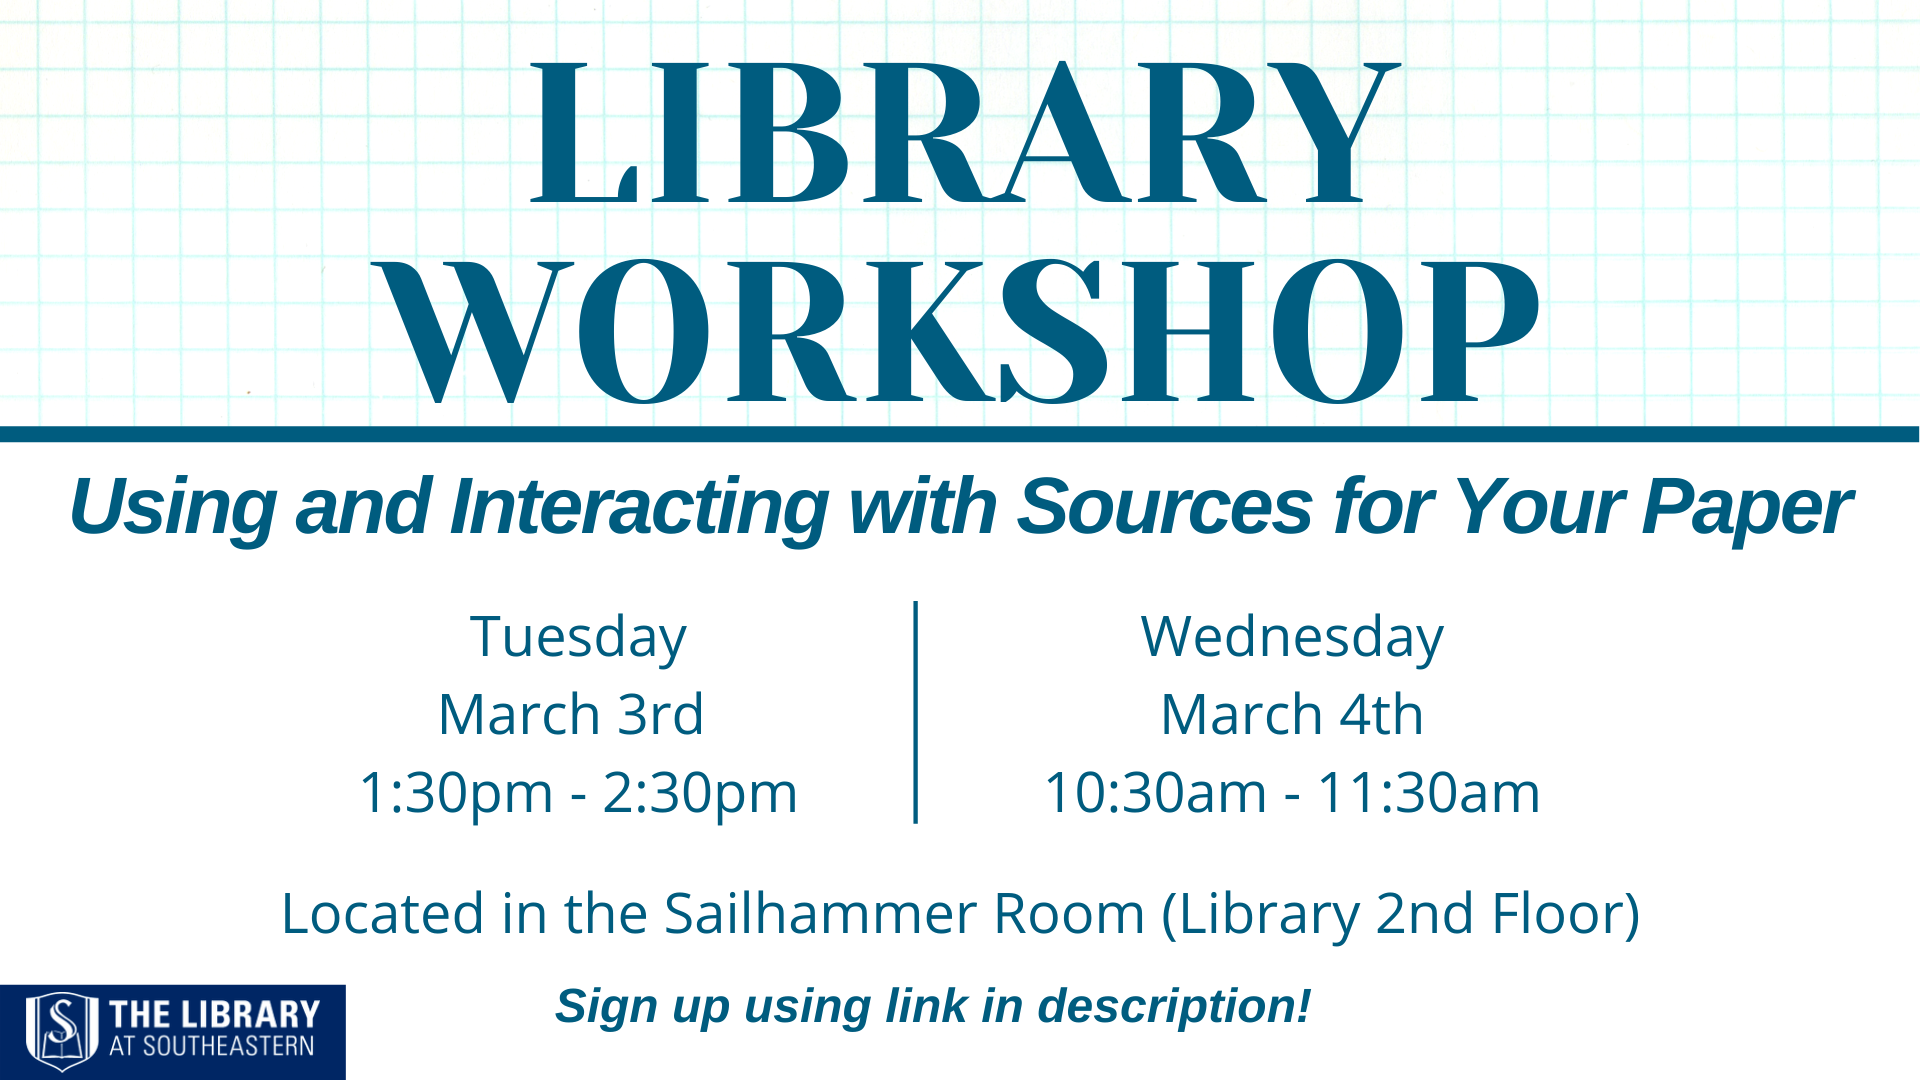 Library Workshop: Interacting with Resources in Your Paper